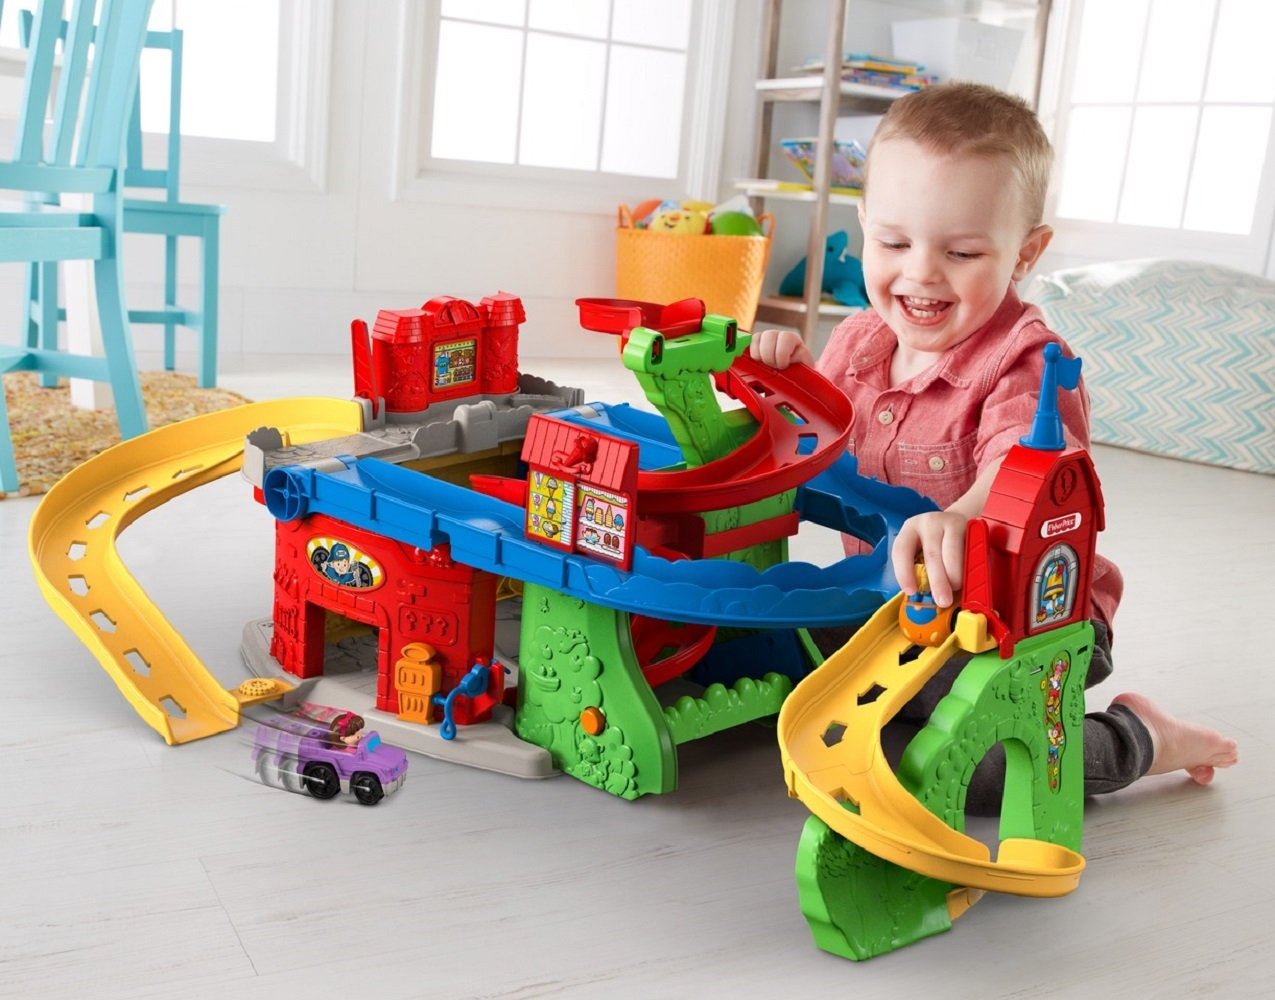 Best Little People Toys : Best gifts and toys for year old boys favorite top